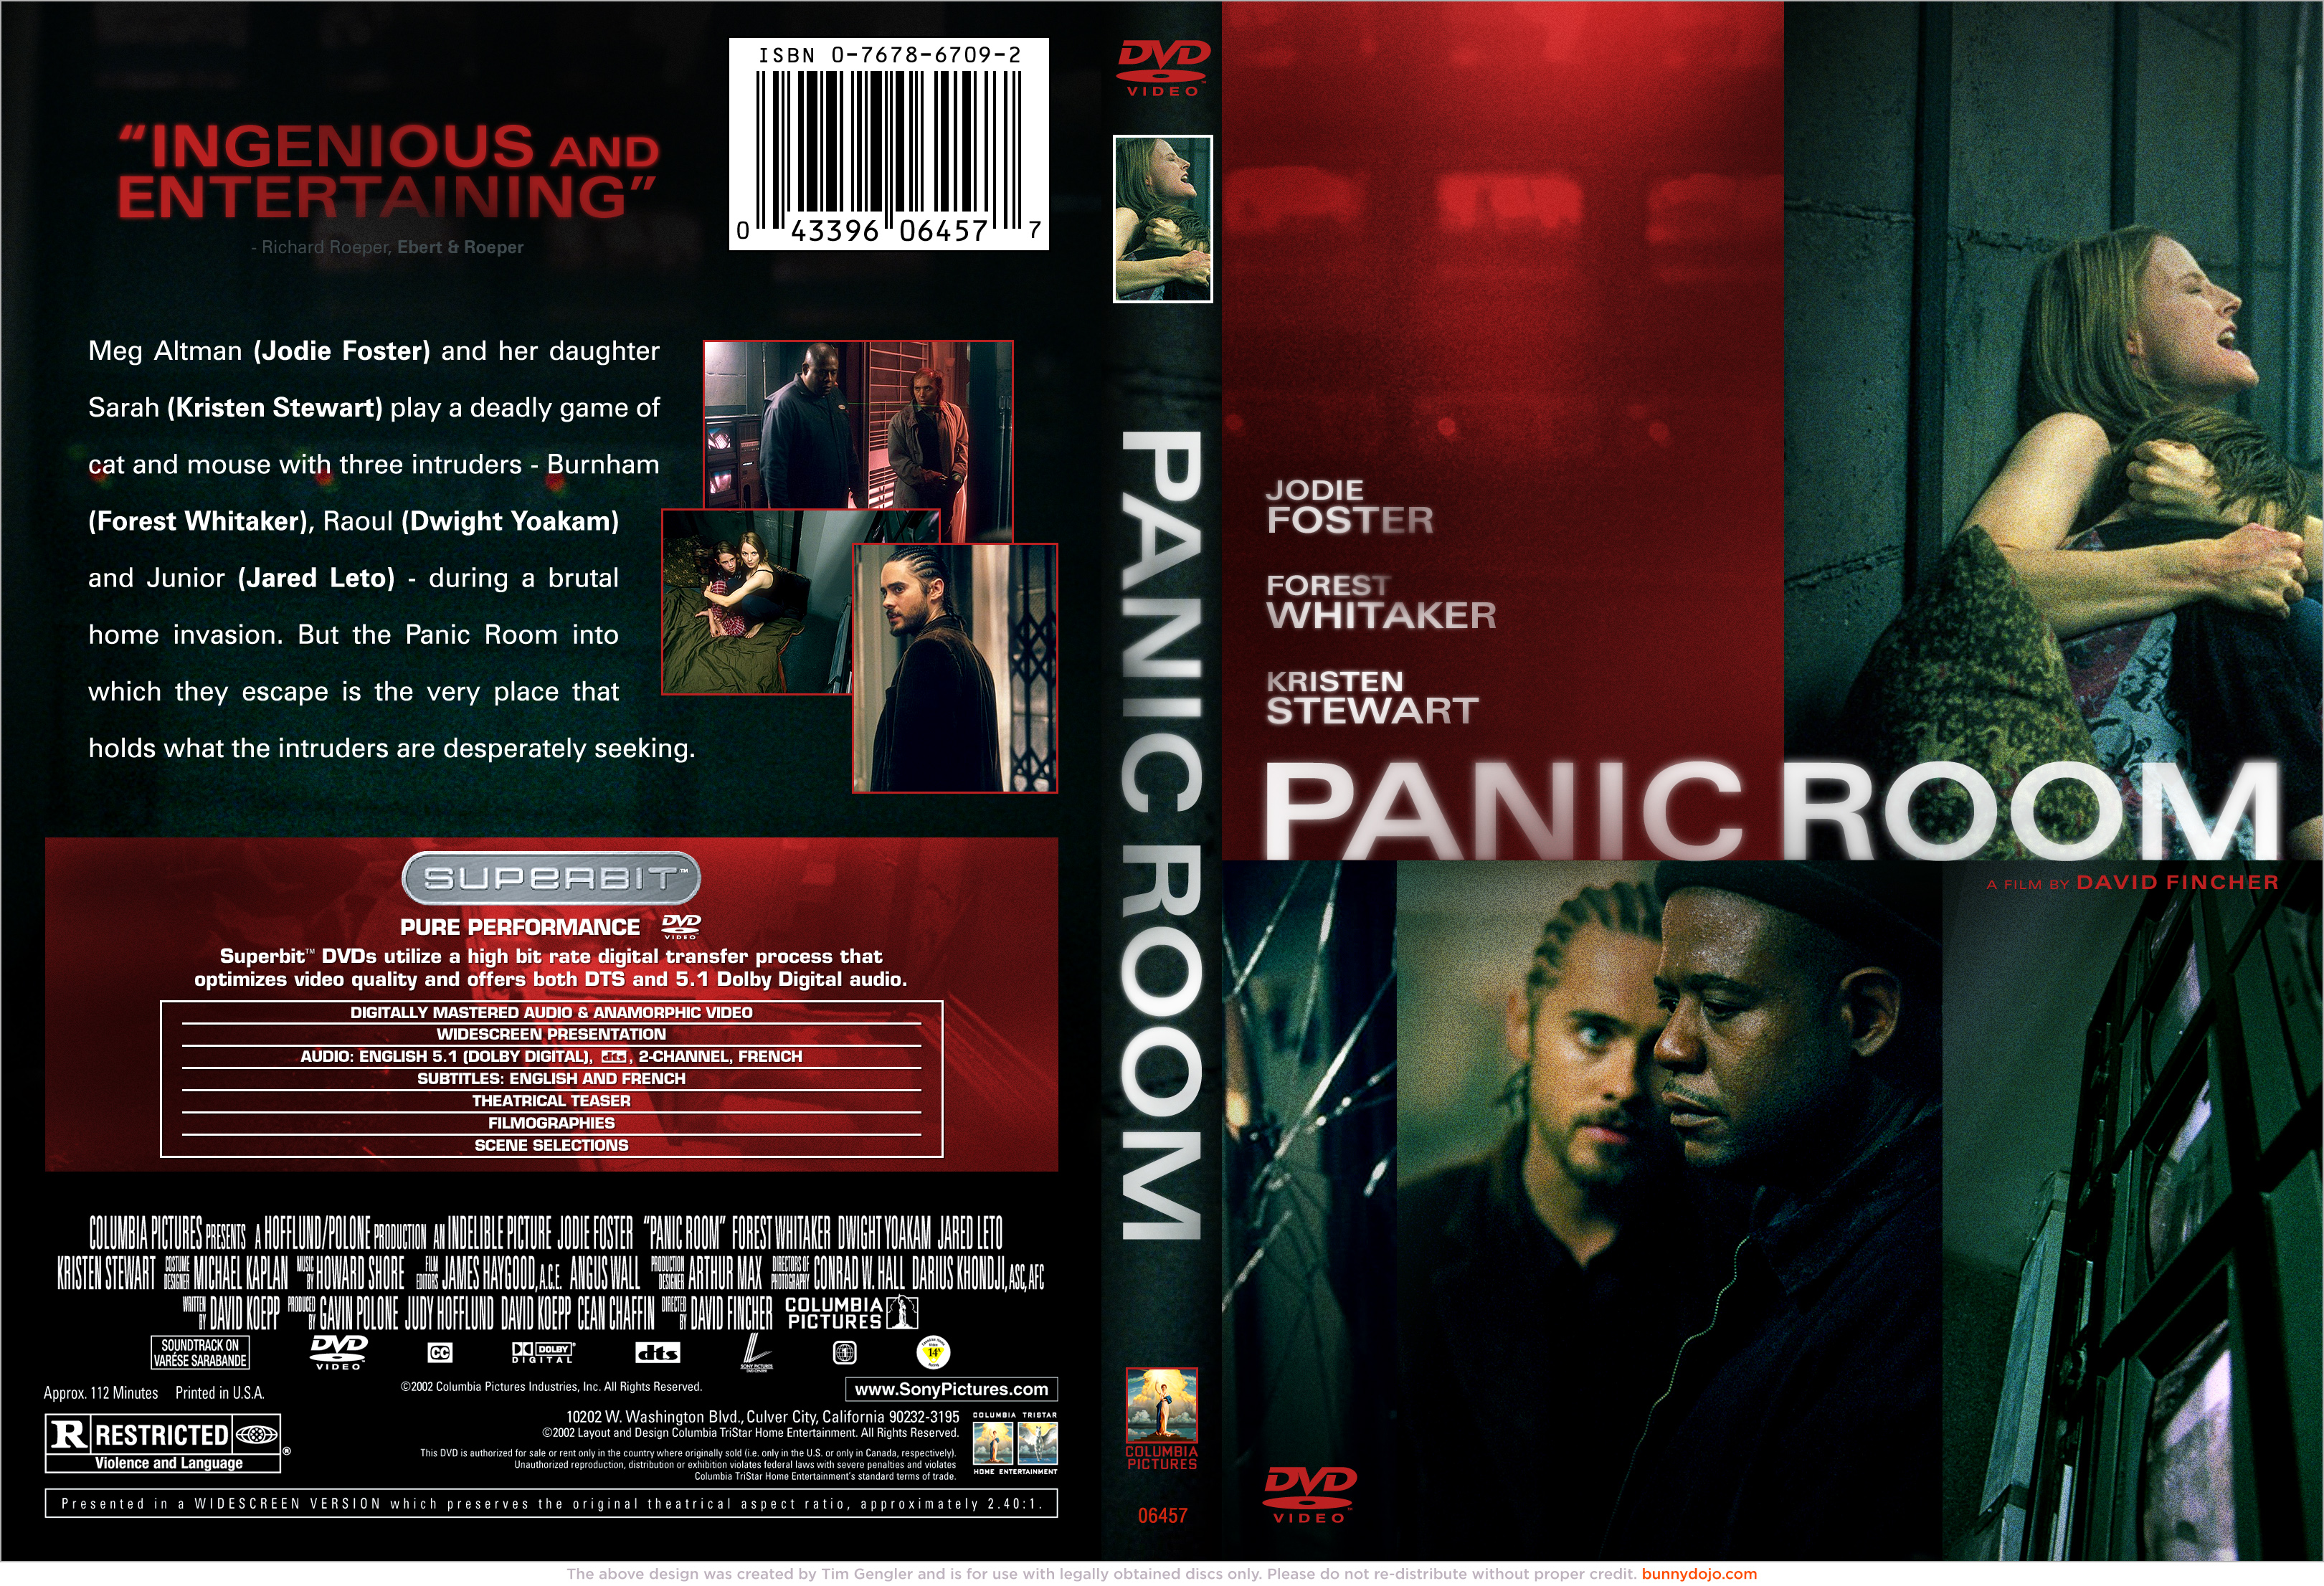 Panic Room 2002 Photos Of Jodie Foster Panic Room Dvd By